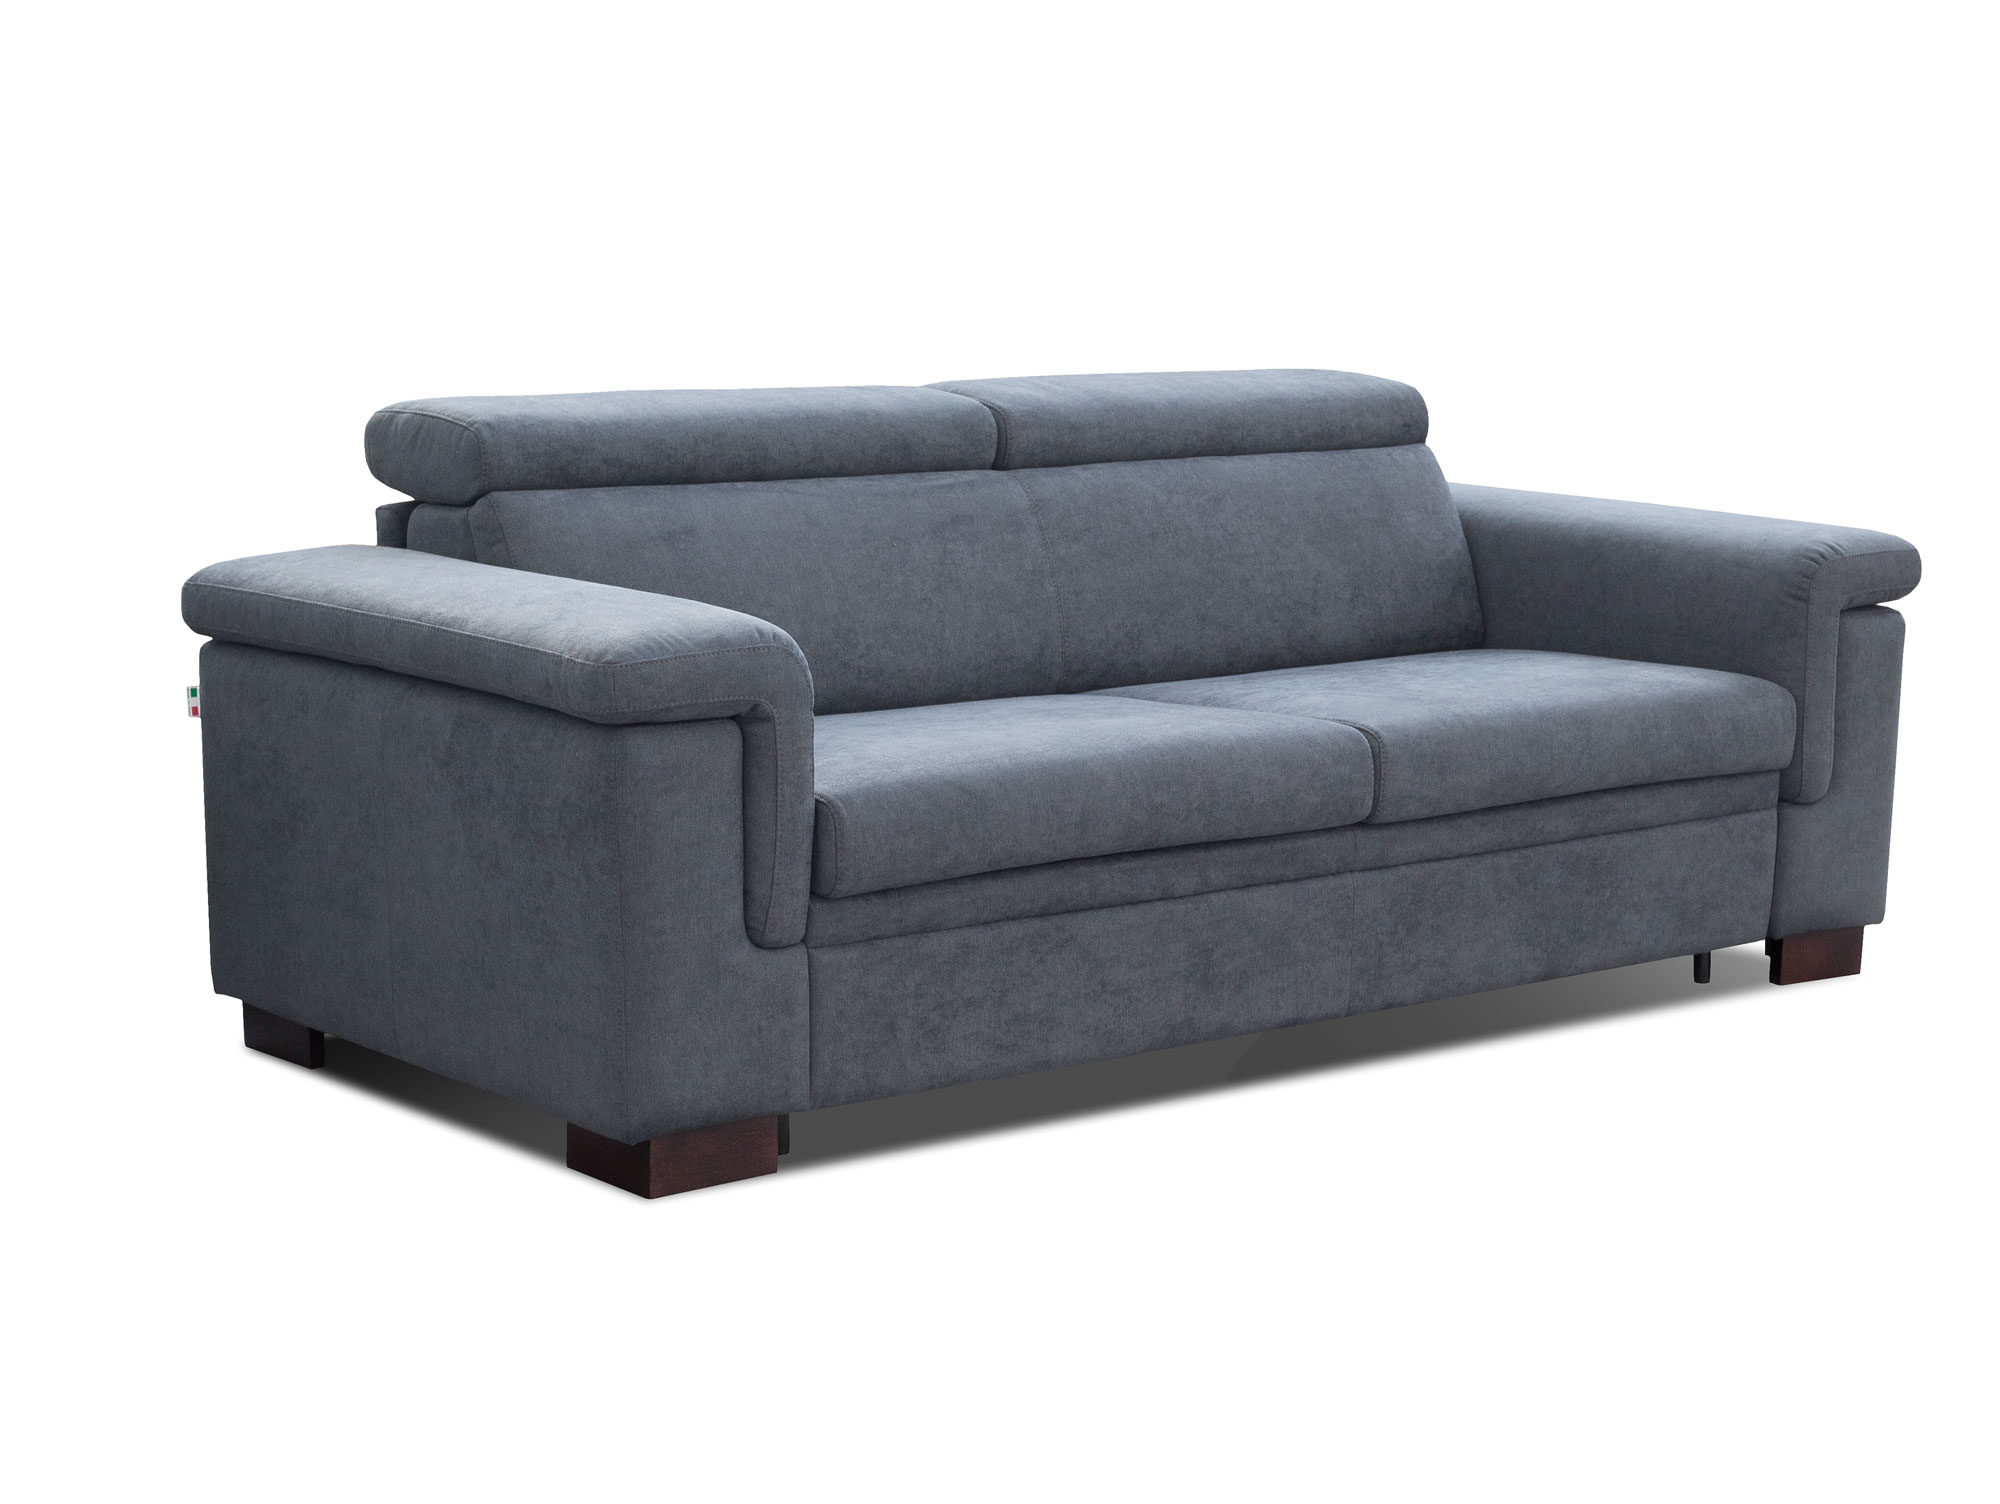 Jimo Schlafsofa Mit Integrierter Matratze Material Stoff Velours